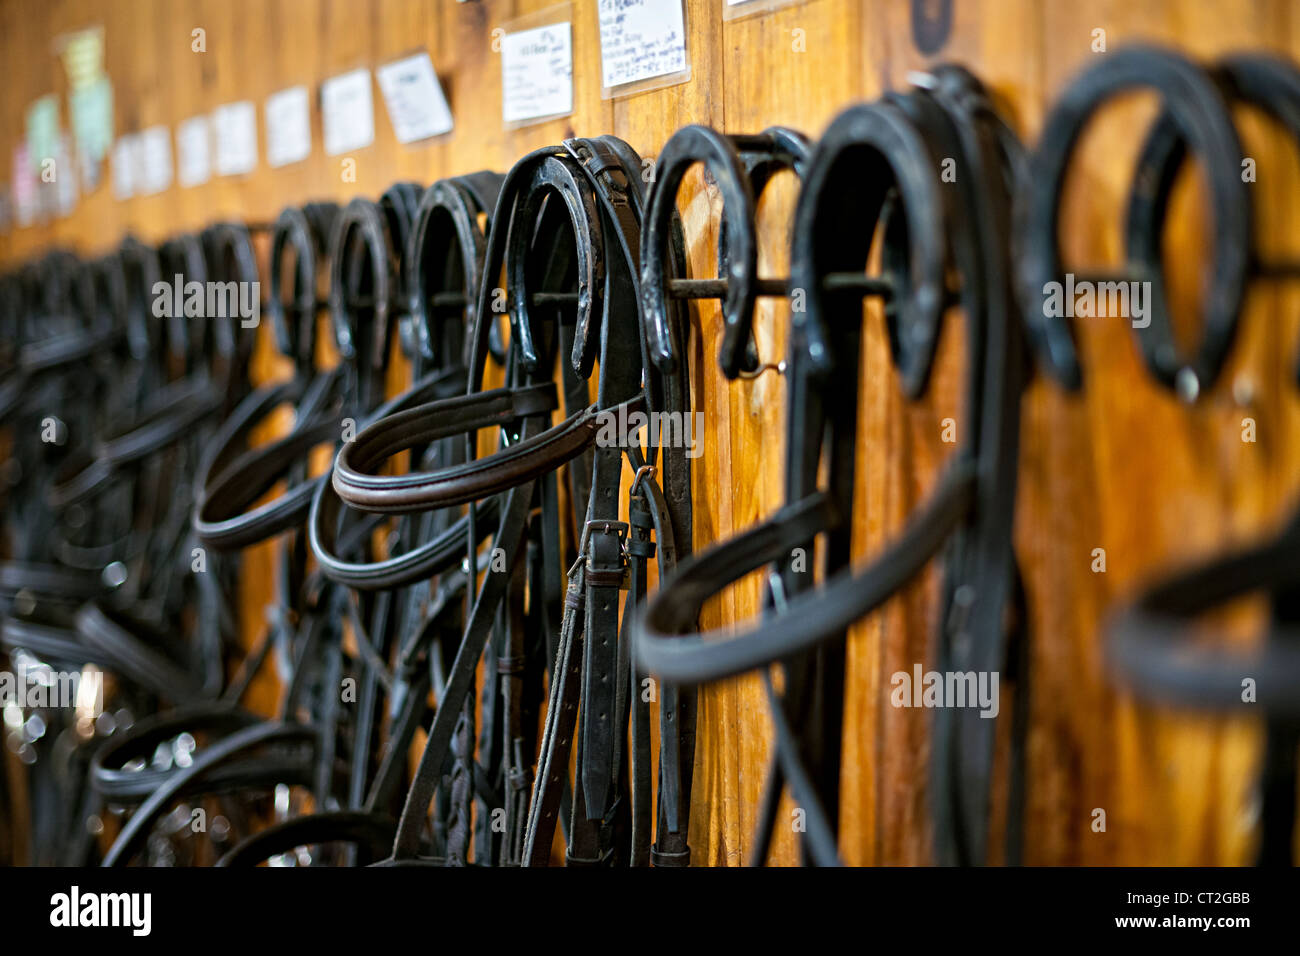 Leather horse bridles and bits hanging on wall of stable - Stock Image